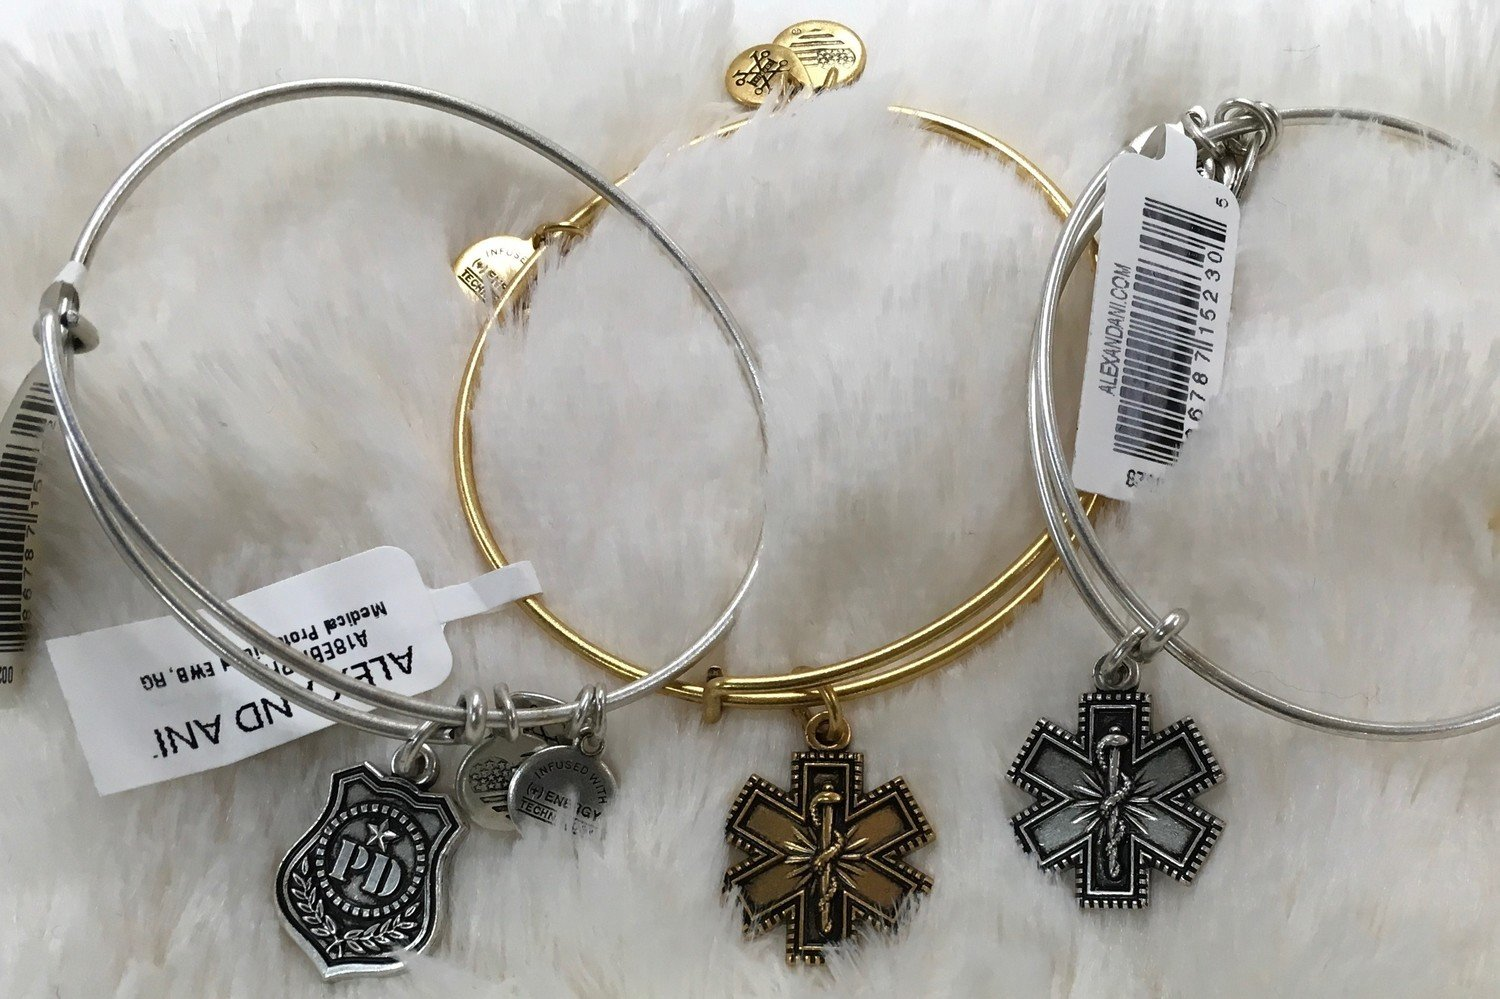 Medical Professional, Firefighter or Law Enforcement Alex and Ani Bangle Bracelet